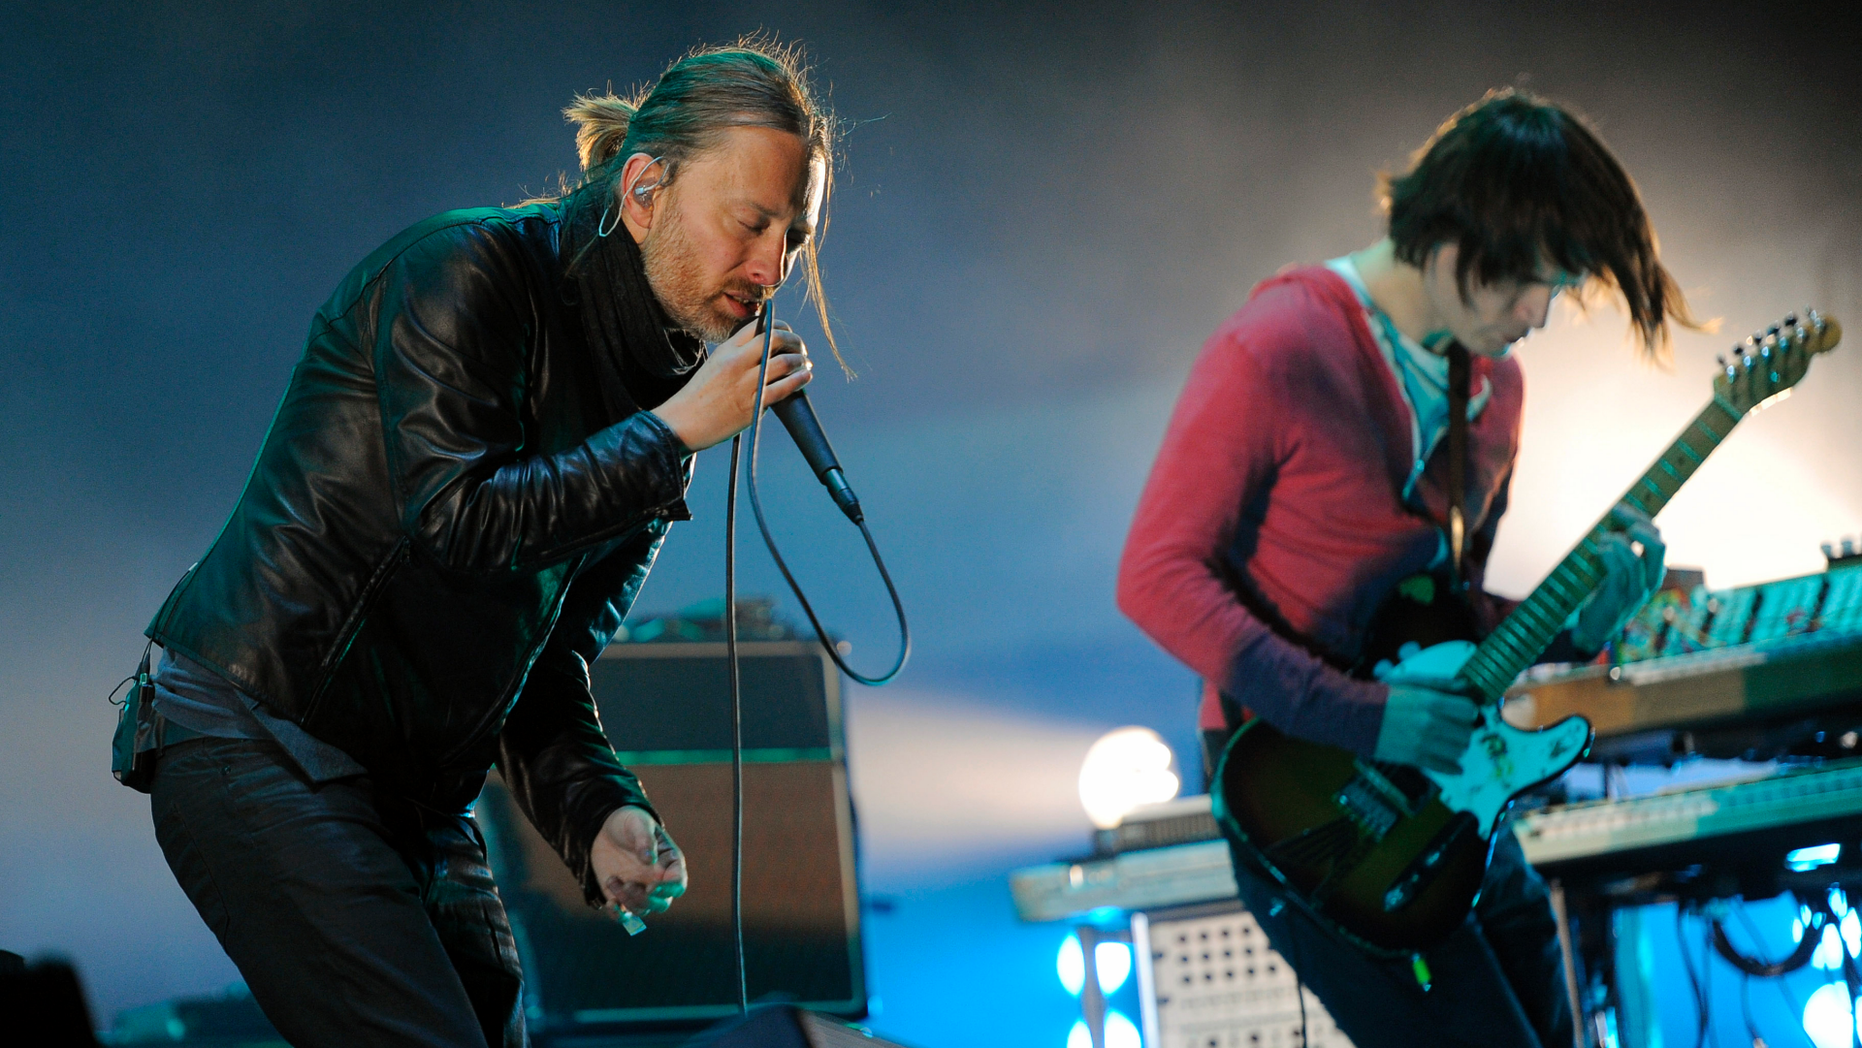 FILE - In this April 14, 2012 file photo, Thom Yorke, left, and Jonny Greenwood of Radiohead perform during the band's headlining set at the 2012 Coachella Valley Music and Arts Festival in Indio, Calif.  Radiohead says a trove of unreleased music has been stolen and is being used for ransom, but instead of paying up, the band announced Tuesday June 11, 2019, they will release it in aid of environmental activist group Extinction Rebellion.(AP Photo/Chris Pizzello, File)